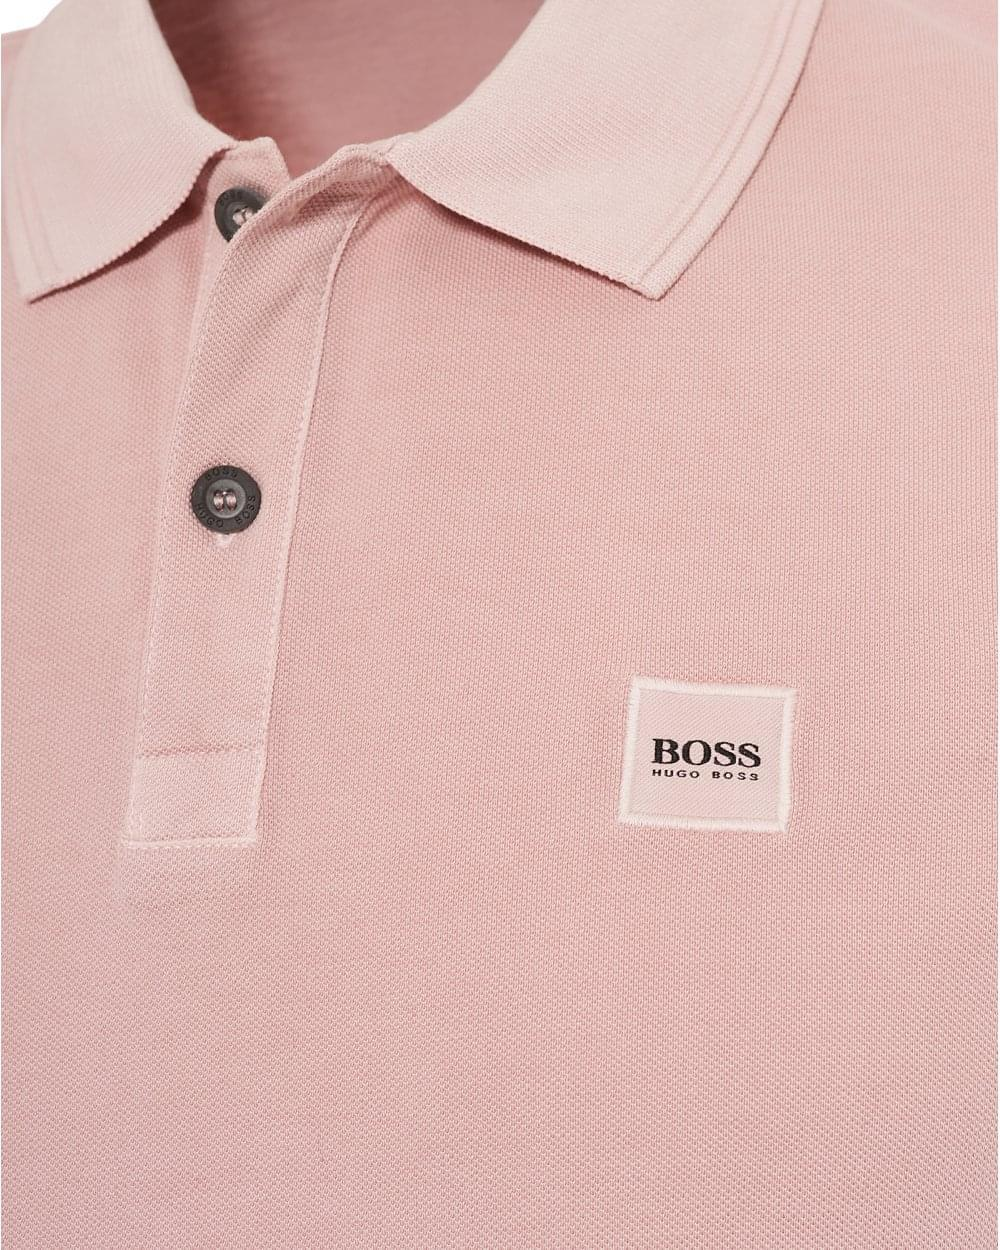 919ee760 BOSS by Hugo Boss Prime Polo Shirt, Slim Fit Chest Badge Washed Pink ...